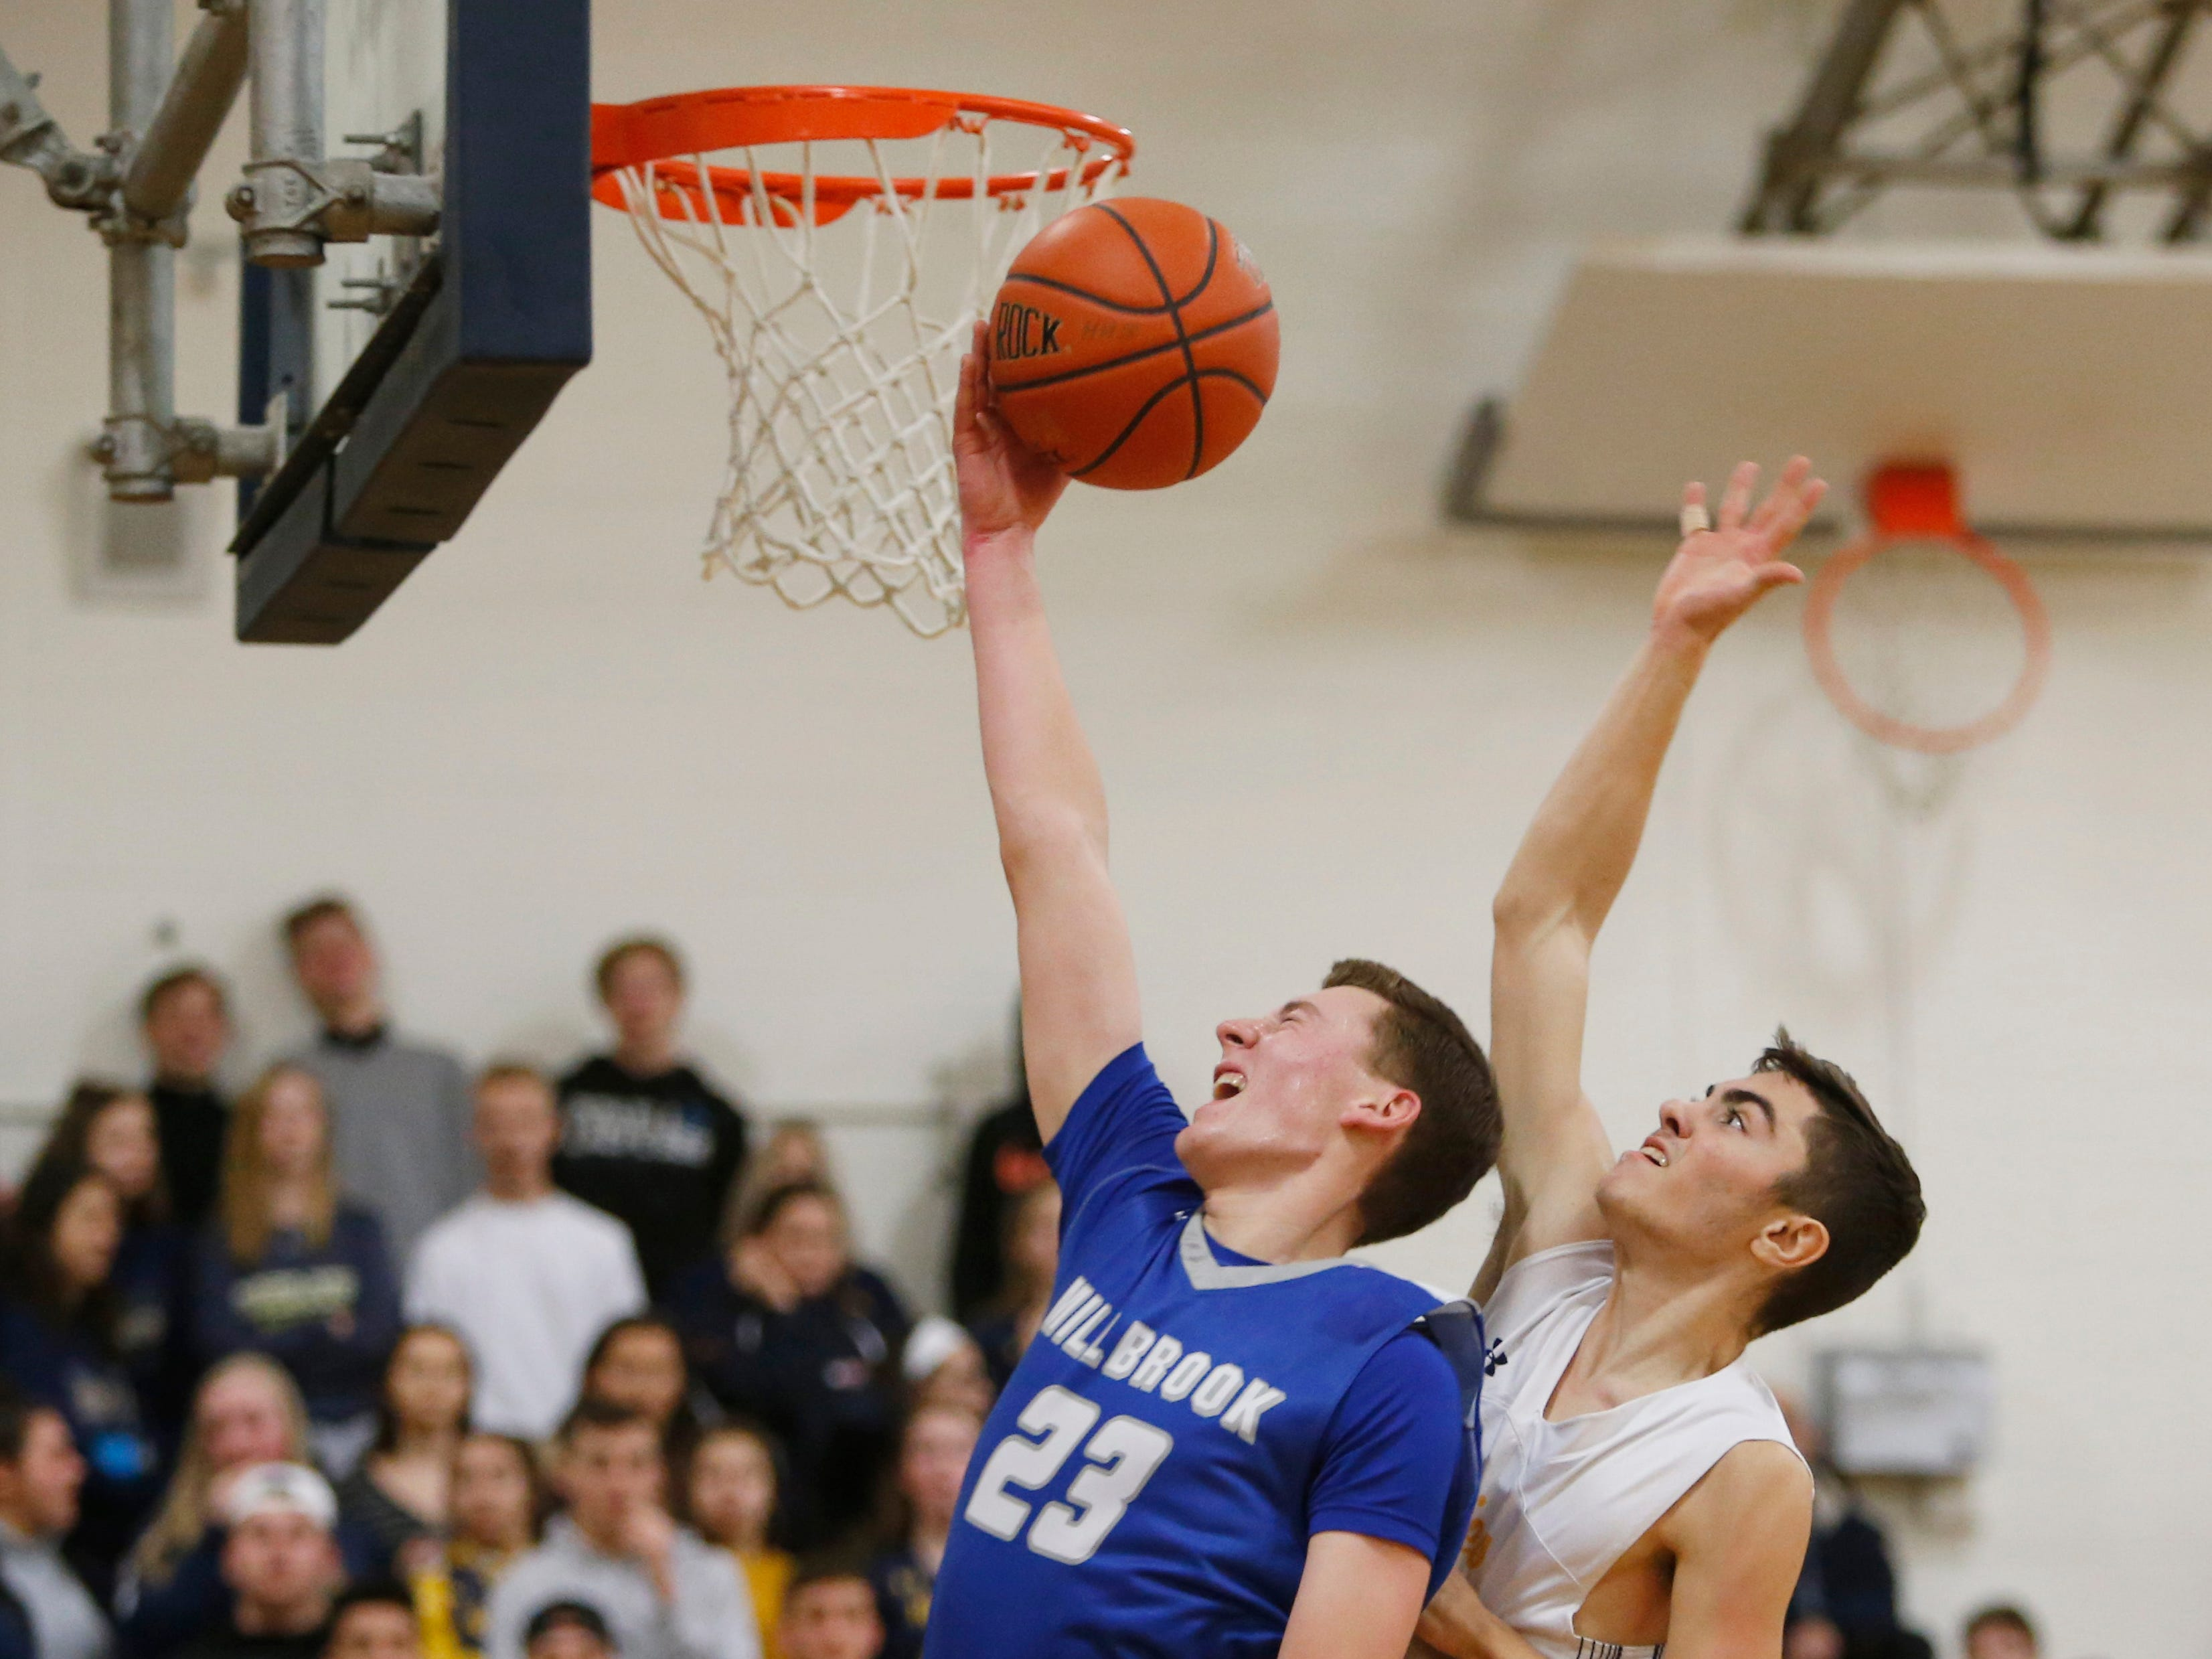 Millbrook basketball insists championship goals remain, despite changes